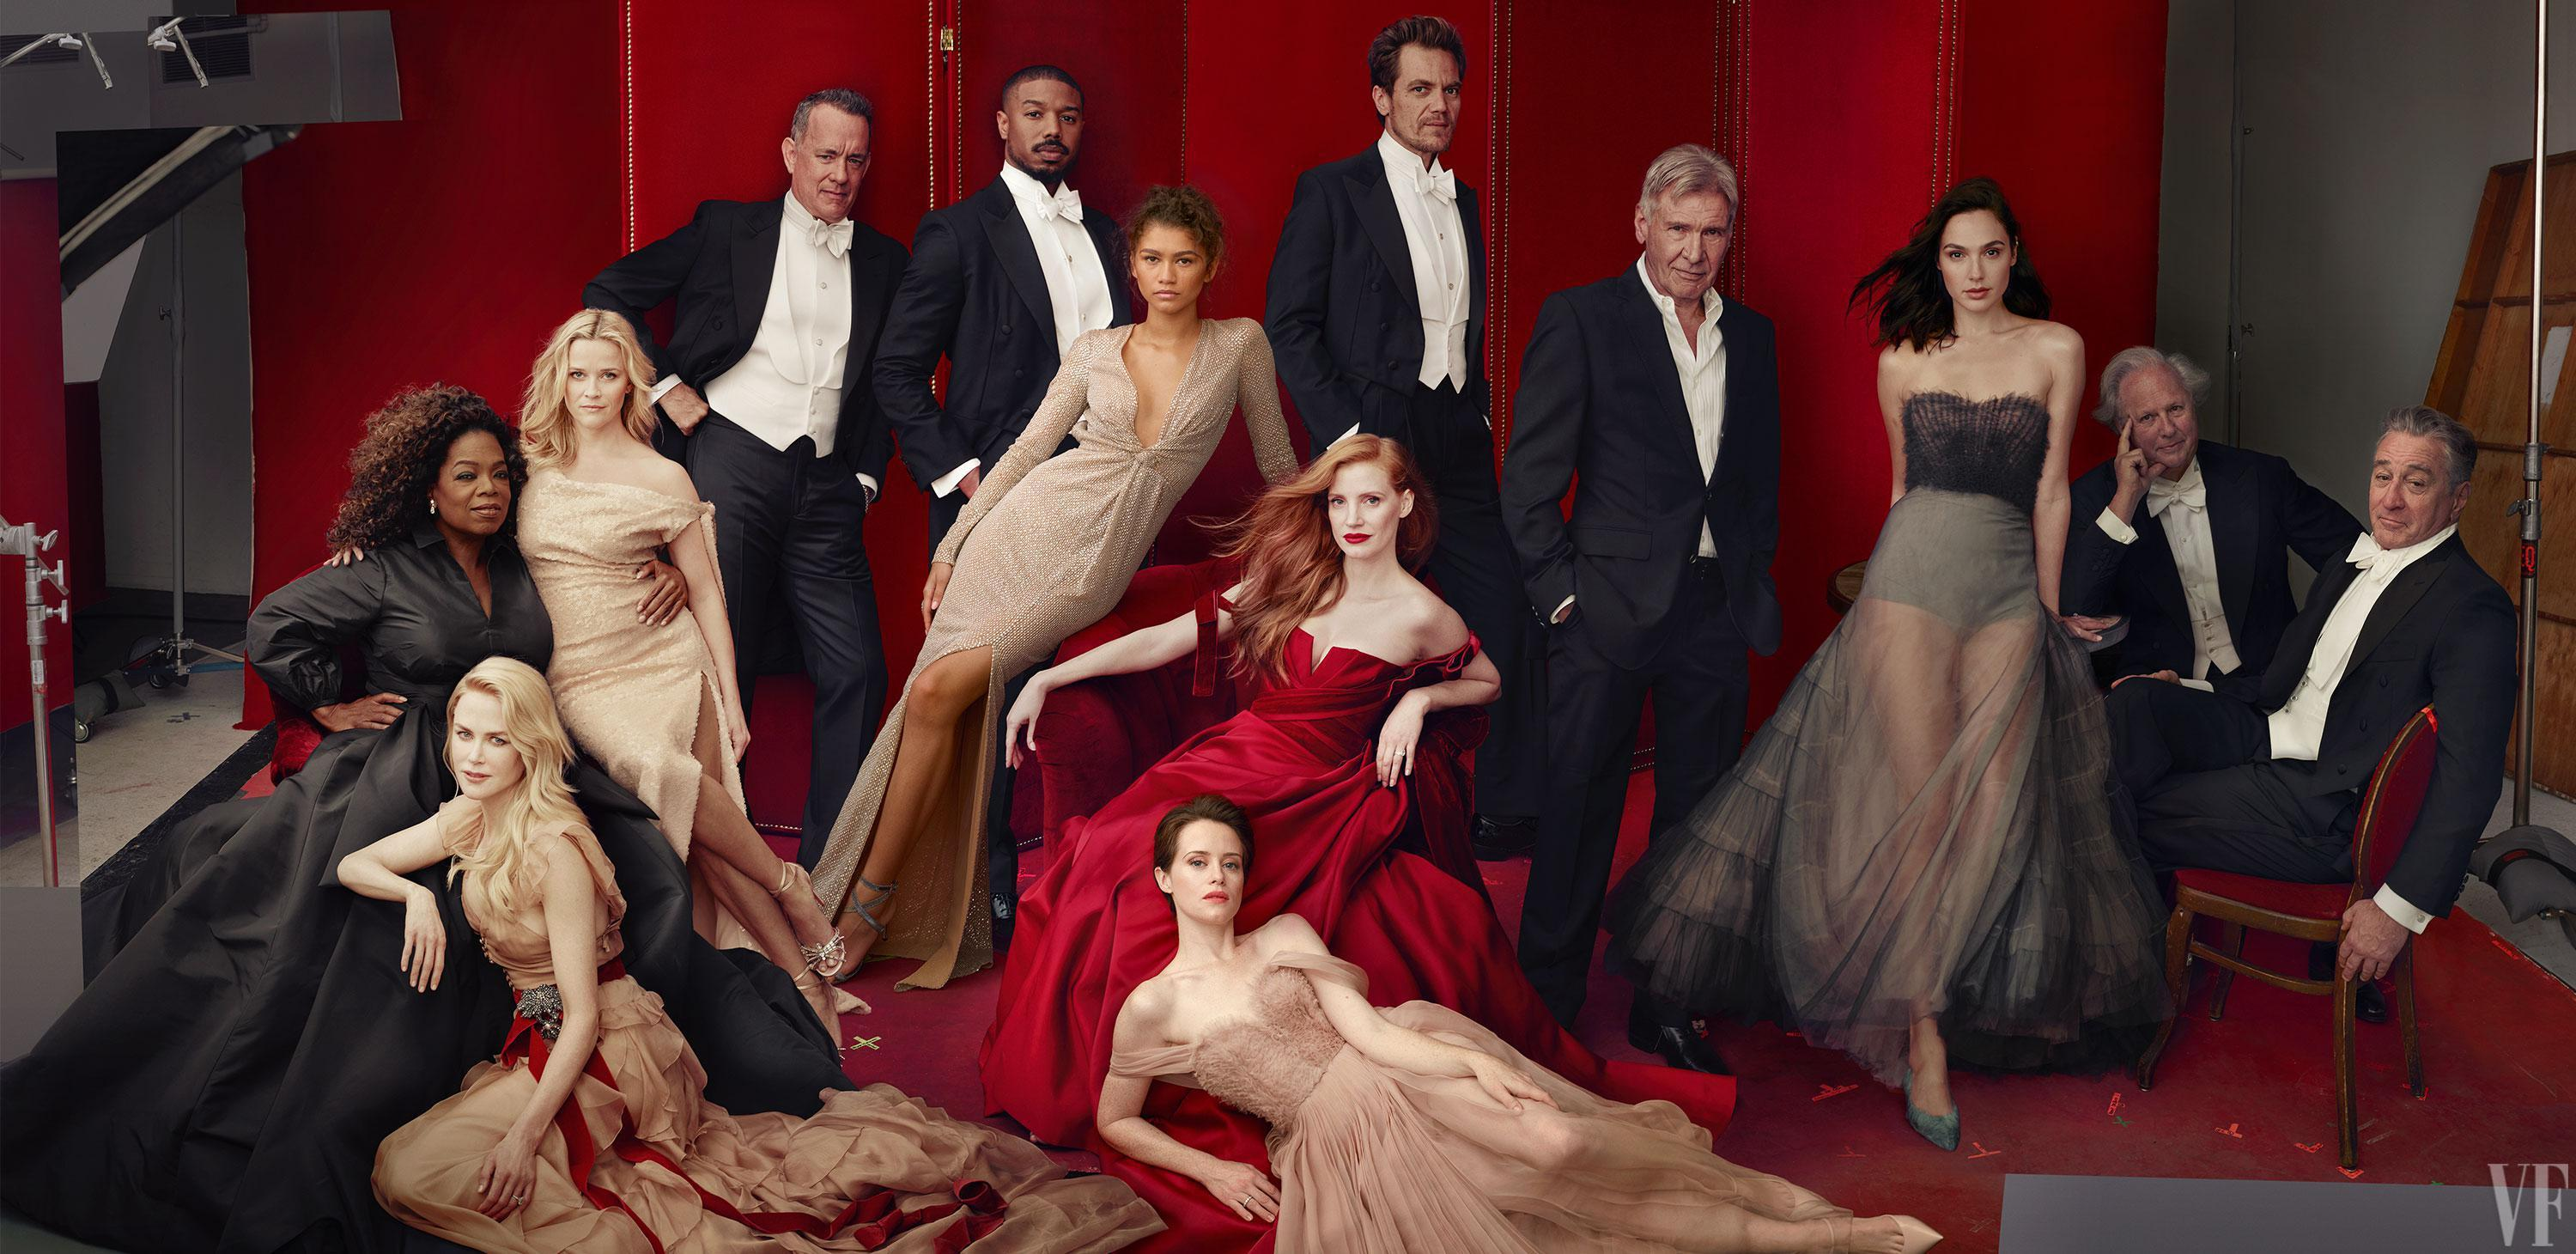 Claire Foy, Nicole Kidman, Oprah and Gal Gadot are among 12 of the world's most famous faces posing for the cover of Vanity Fair's iconic Hollywood issue